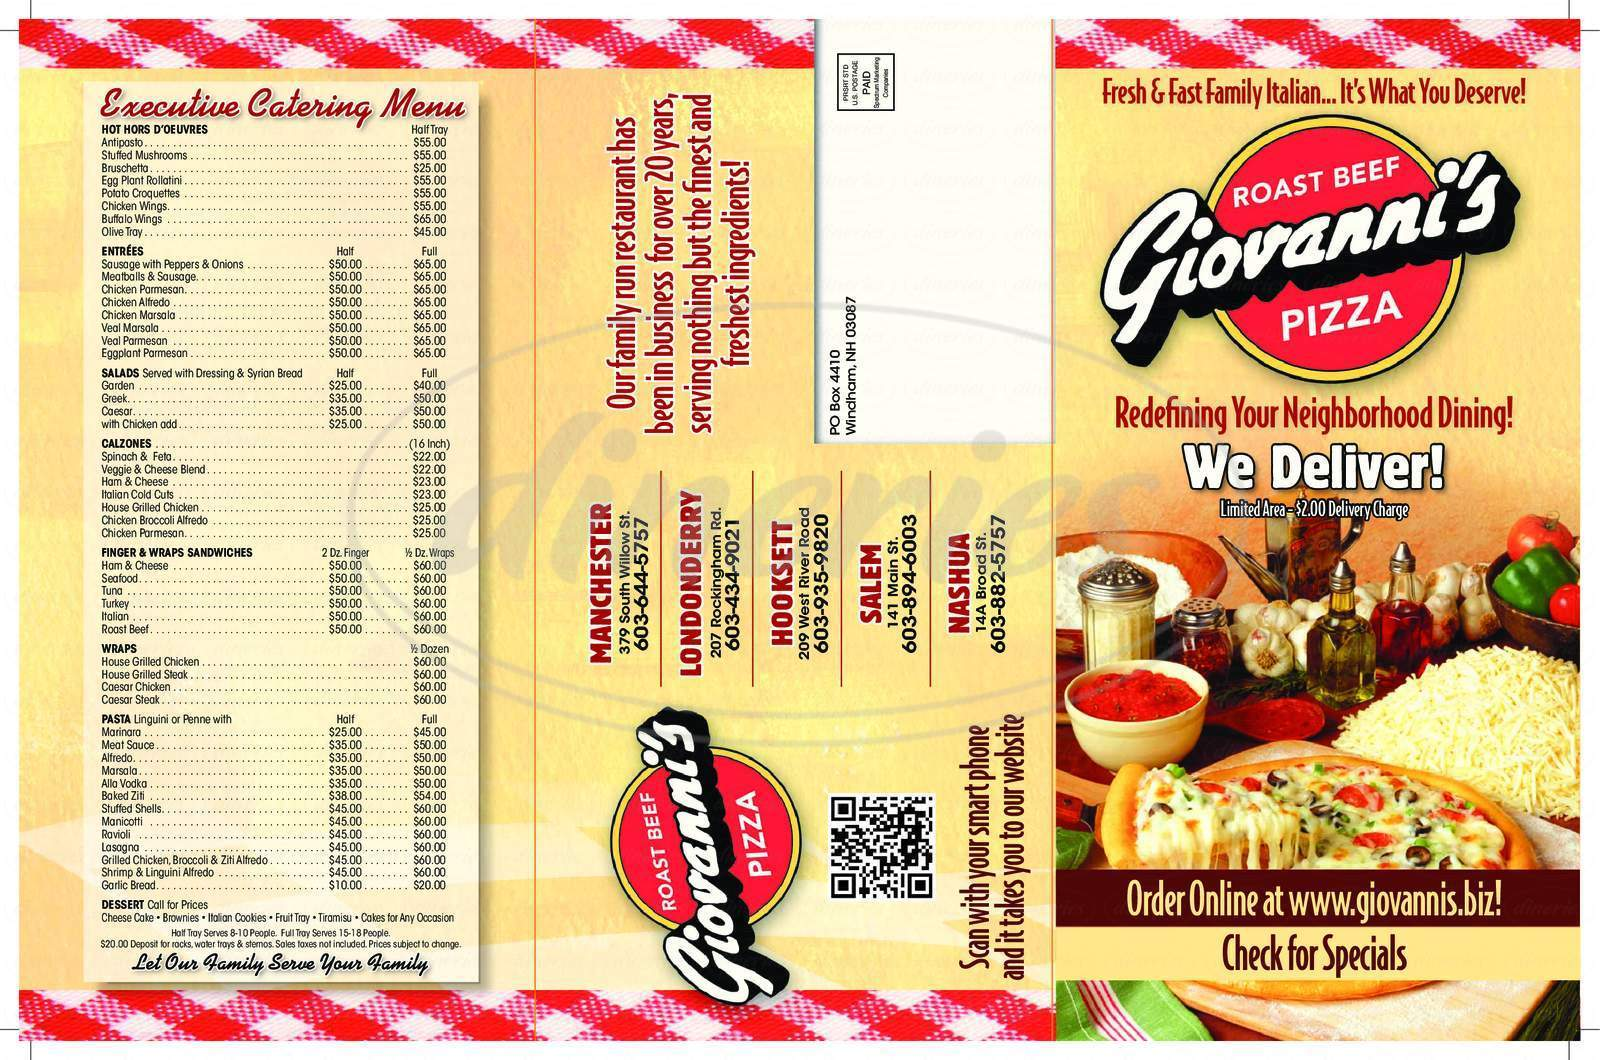 menu for Giovannis